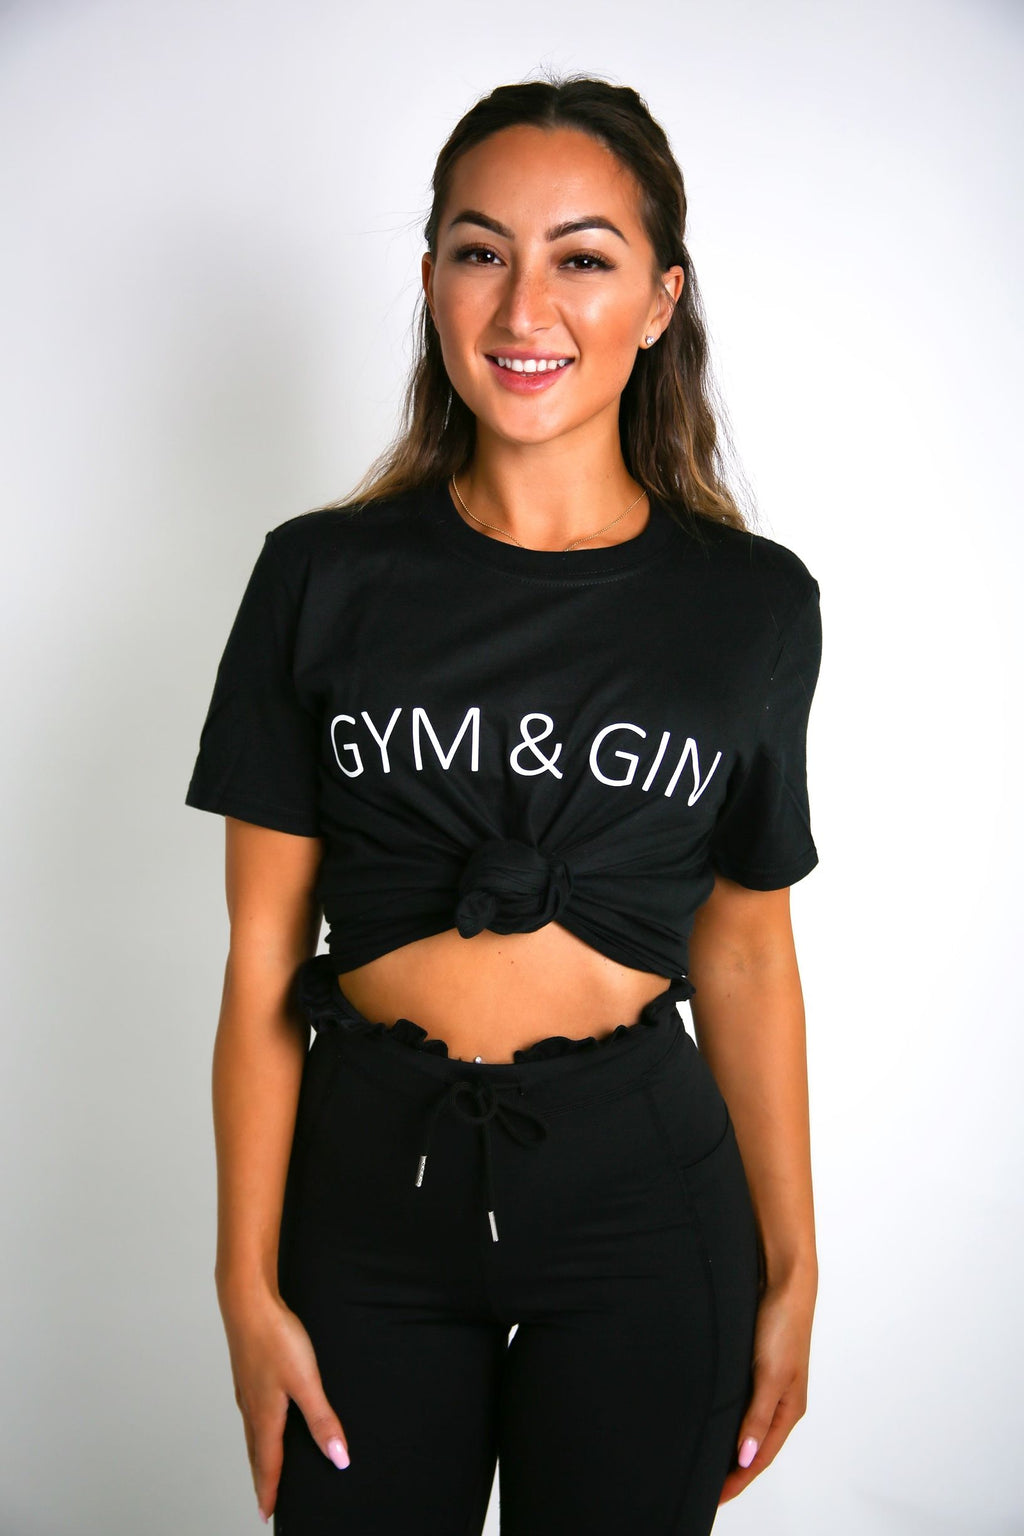 Gym & Gin Tee - BBx FITNESS